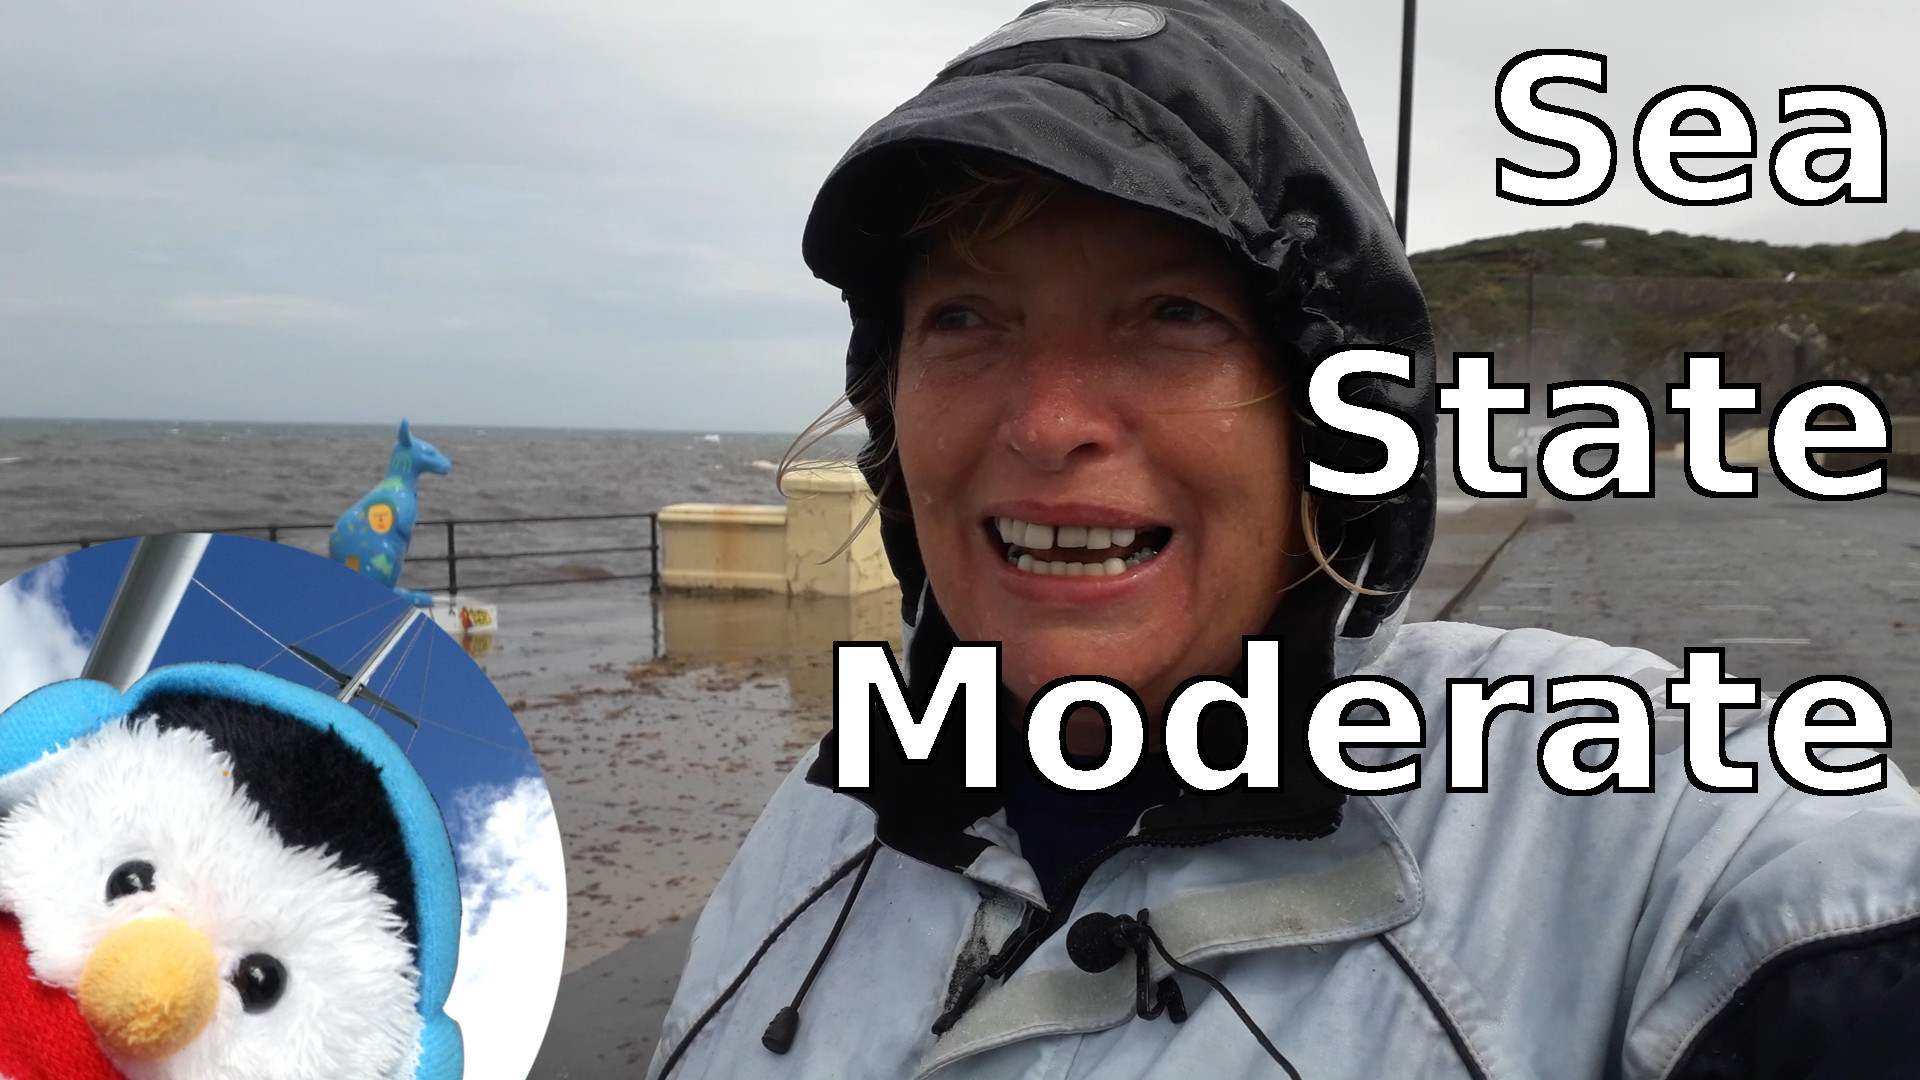 Watch our 'Sea state moderate' video and add comments etc.